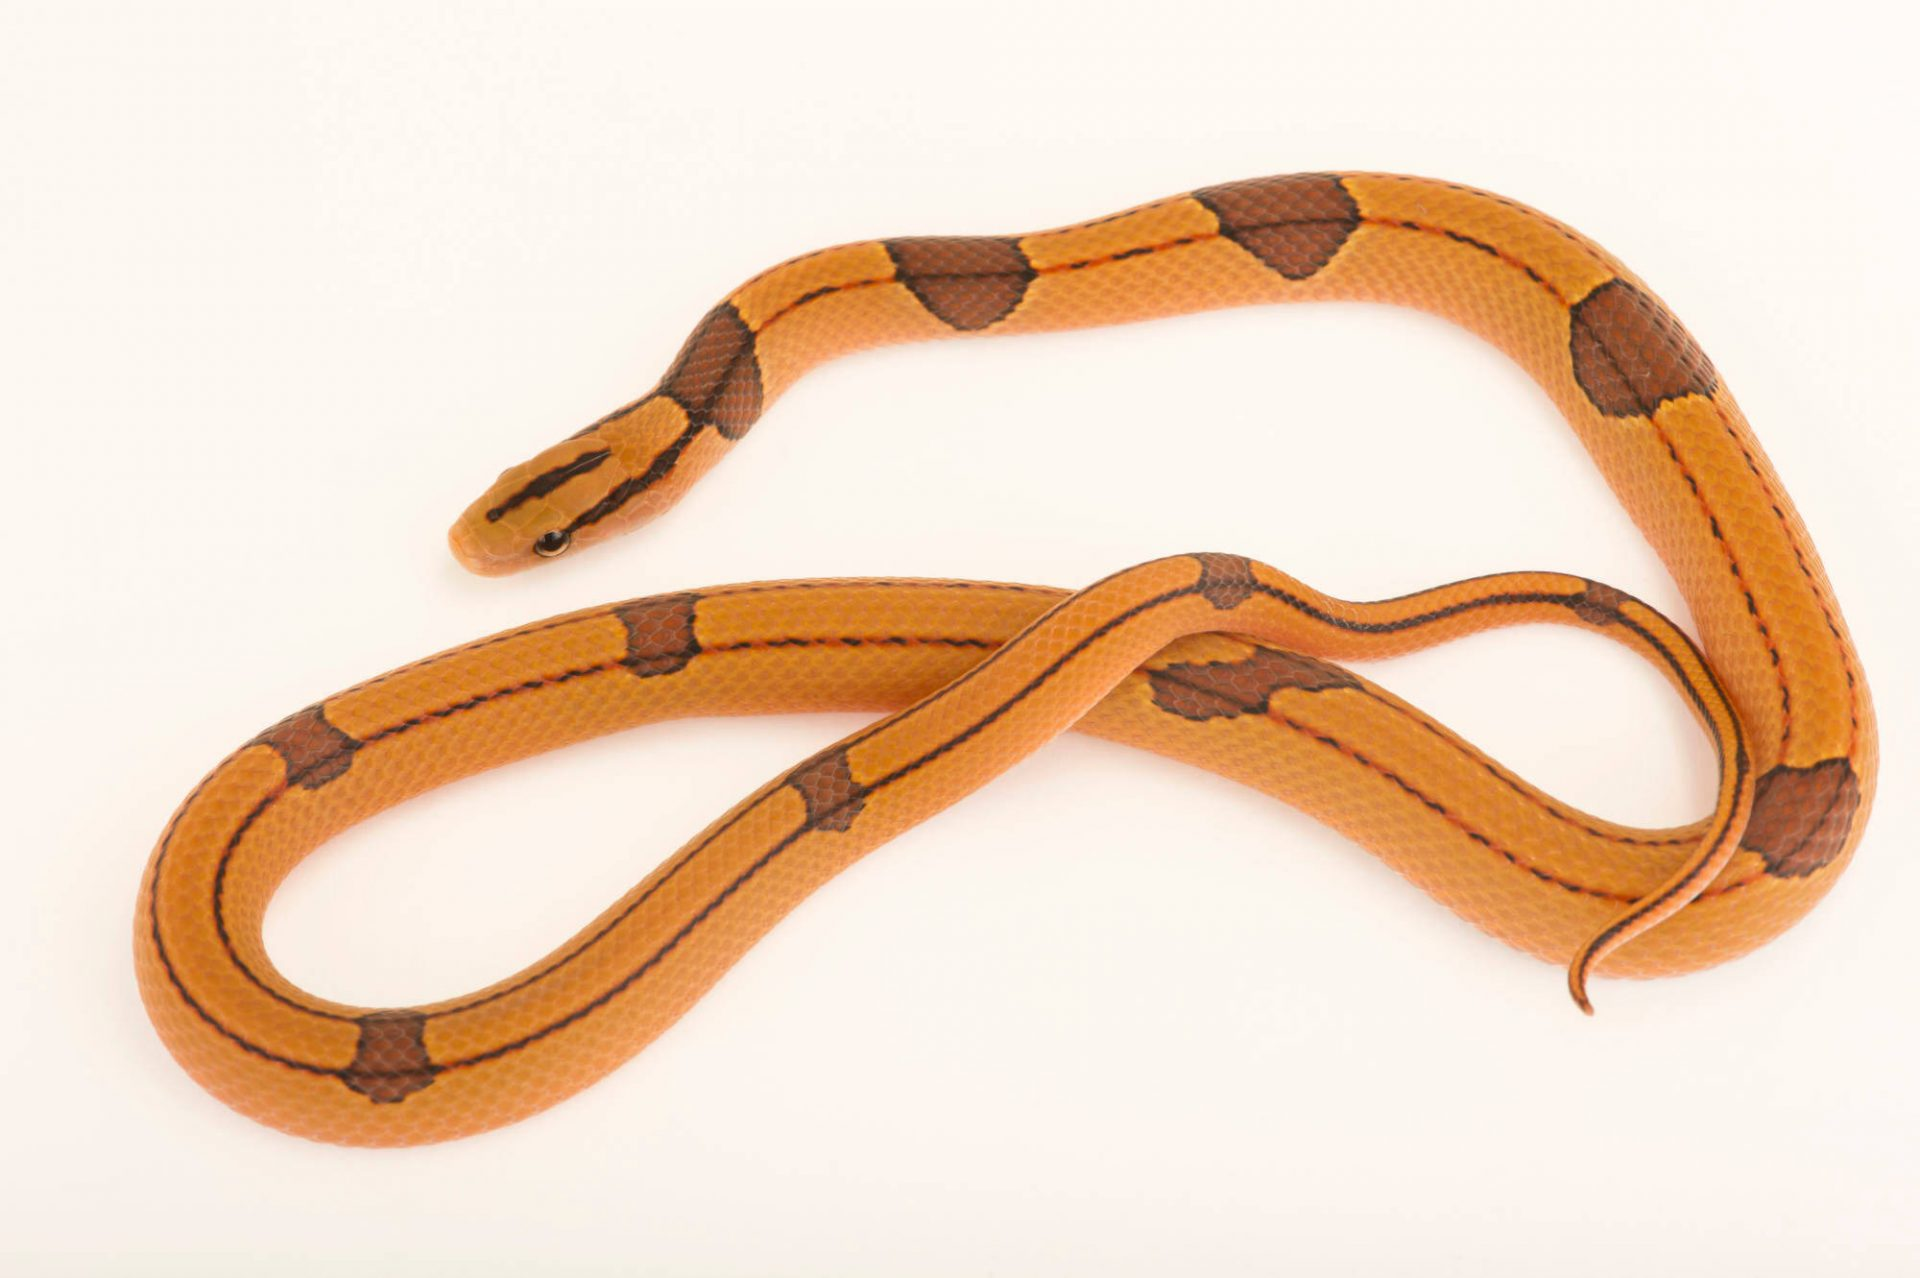 Photo: Red bamboo snake (Oreocryptophis porphyraceus vaillantii) from a private collection.